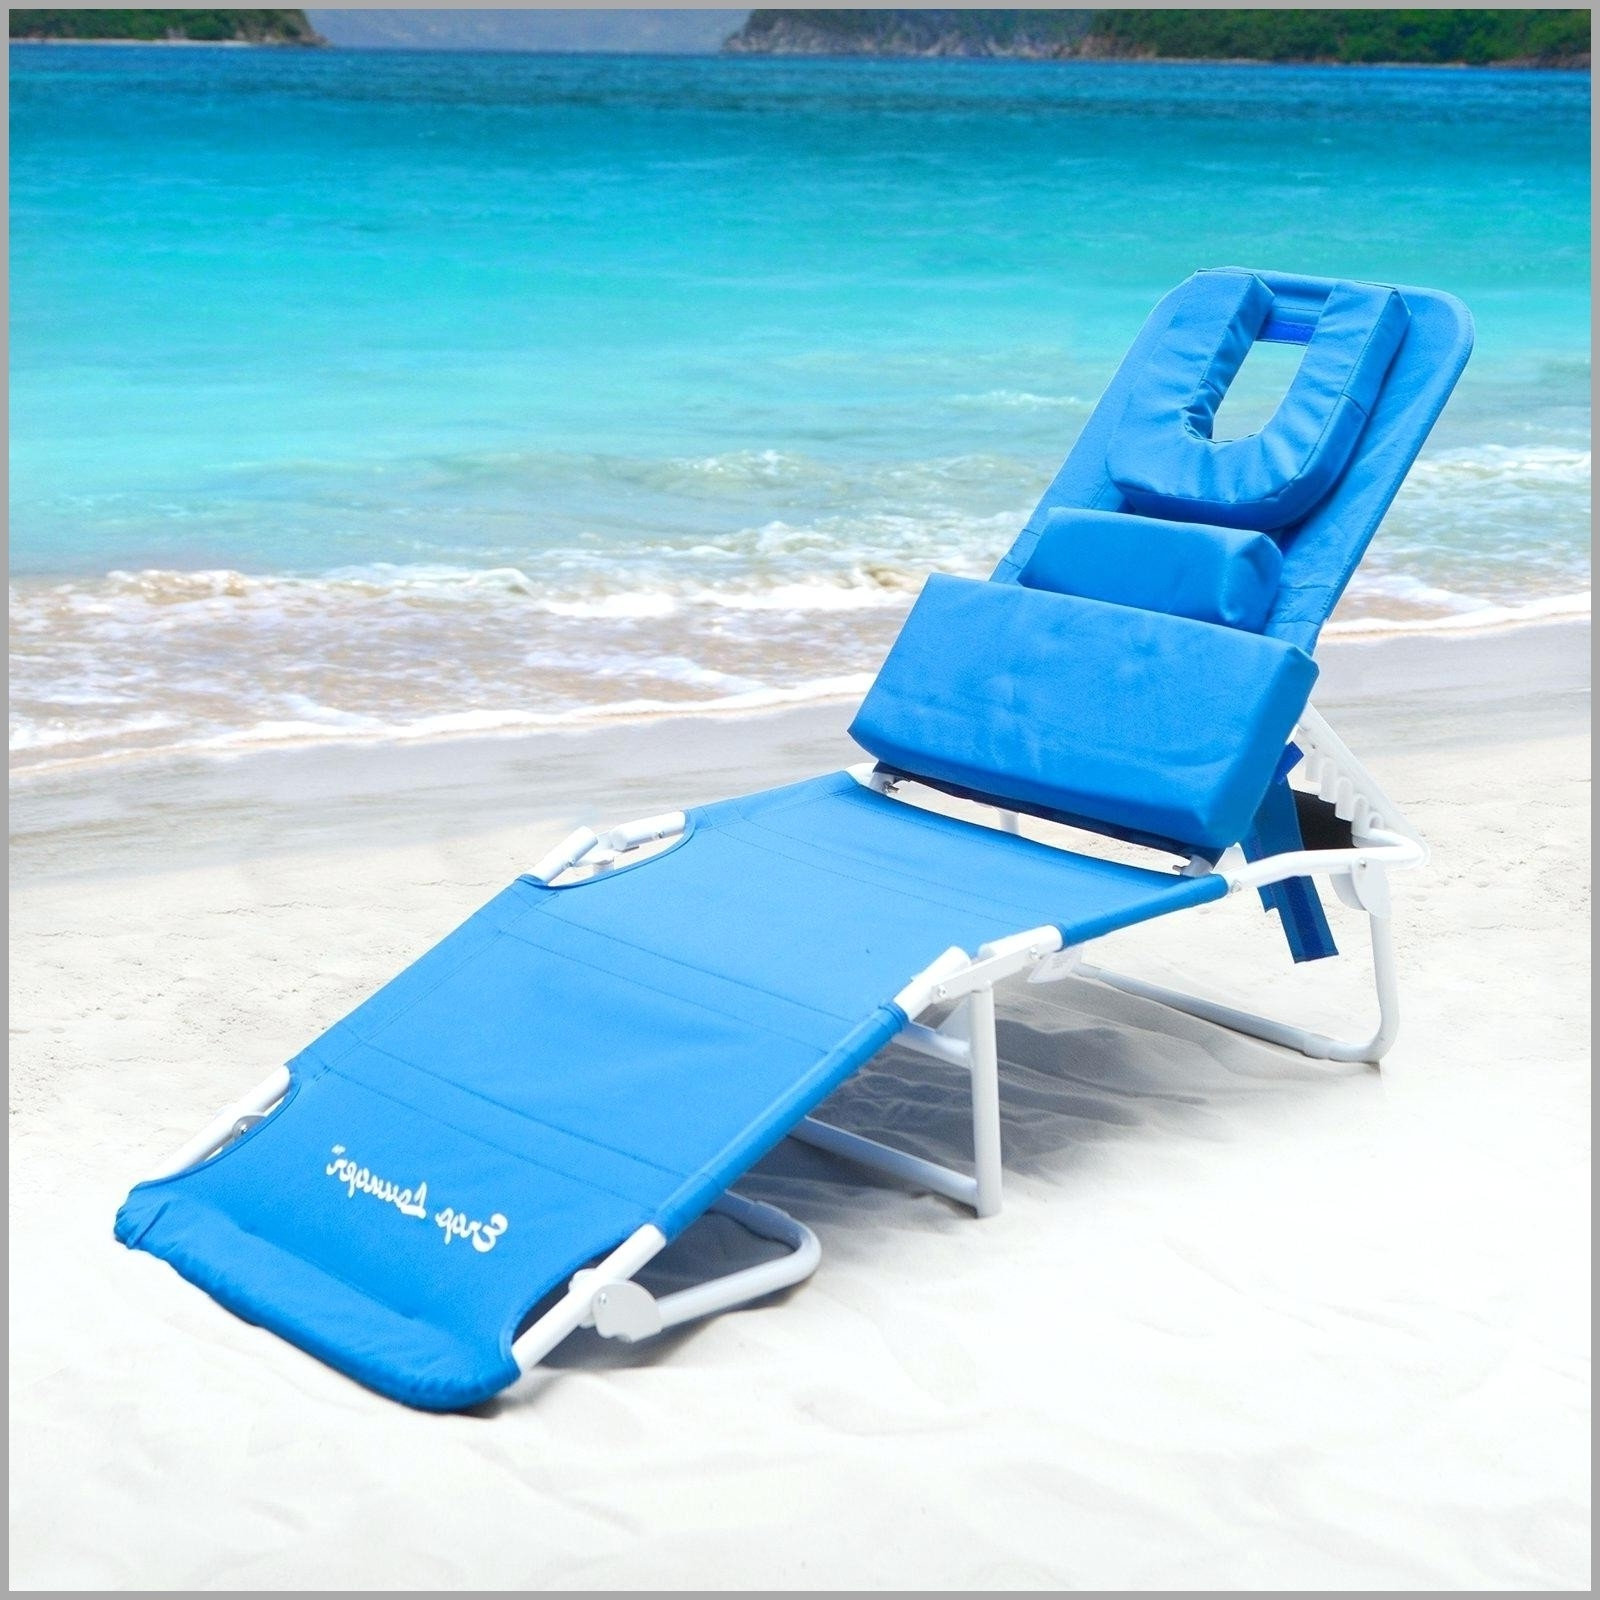 2017 Lounge Chaise Chair By Ostrich Pertaining To Folding Beach Chaise Lounge (View 1 of 15)